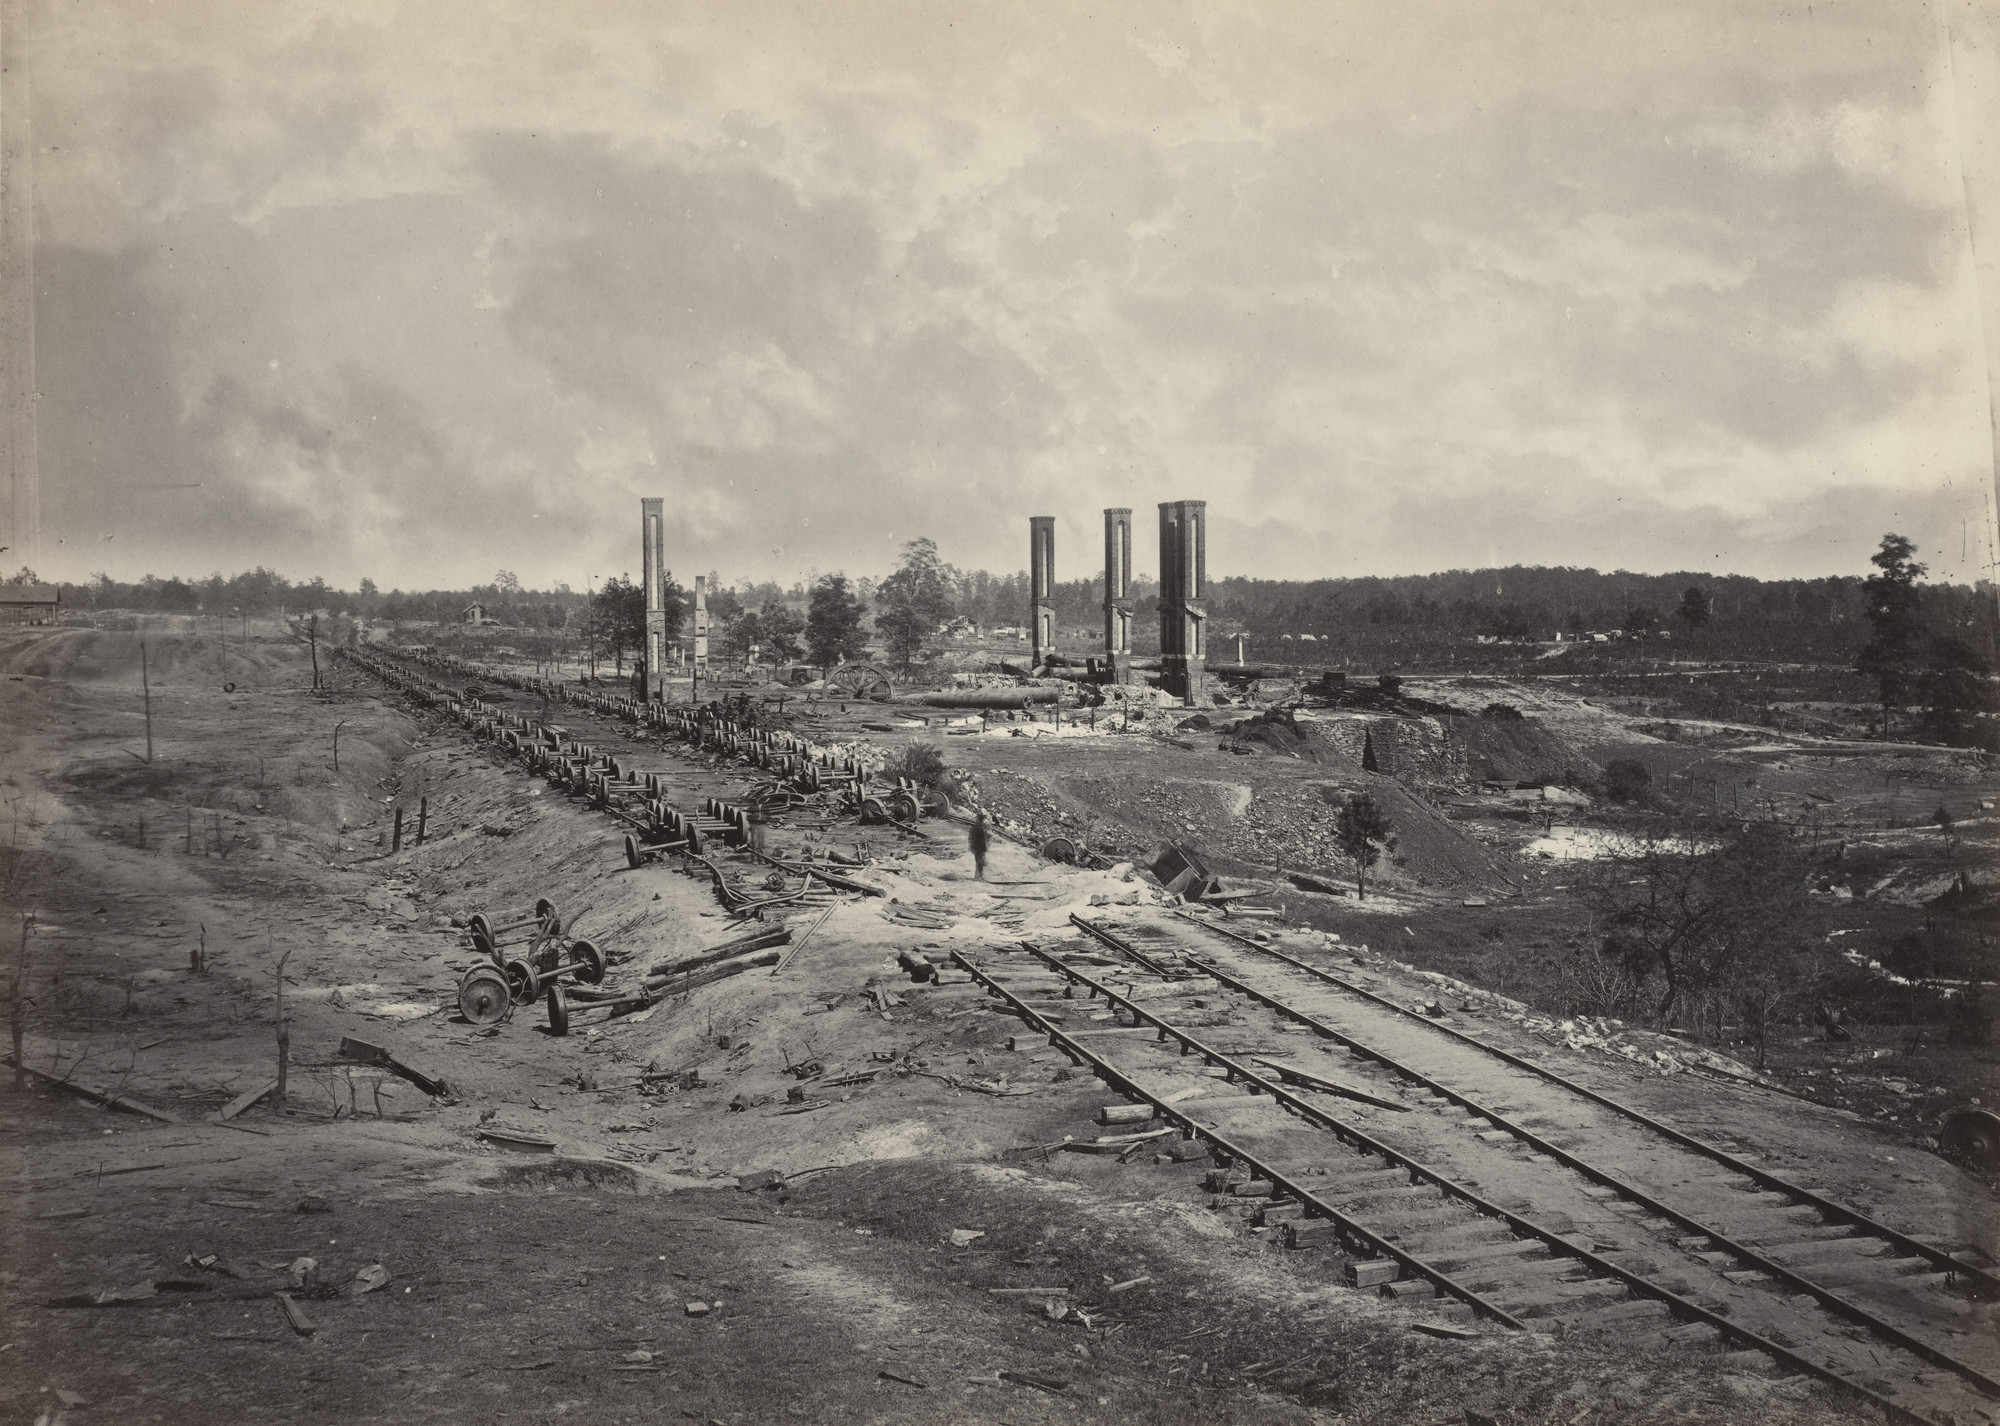 George Barnard. Destruction of Hood's Ordnance Train from the album Photographic Views of Sherman's Campaign(1866). 1864-65